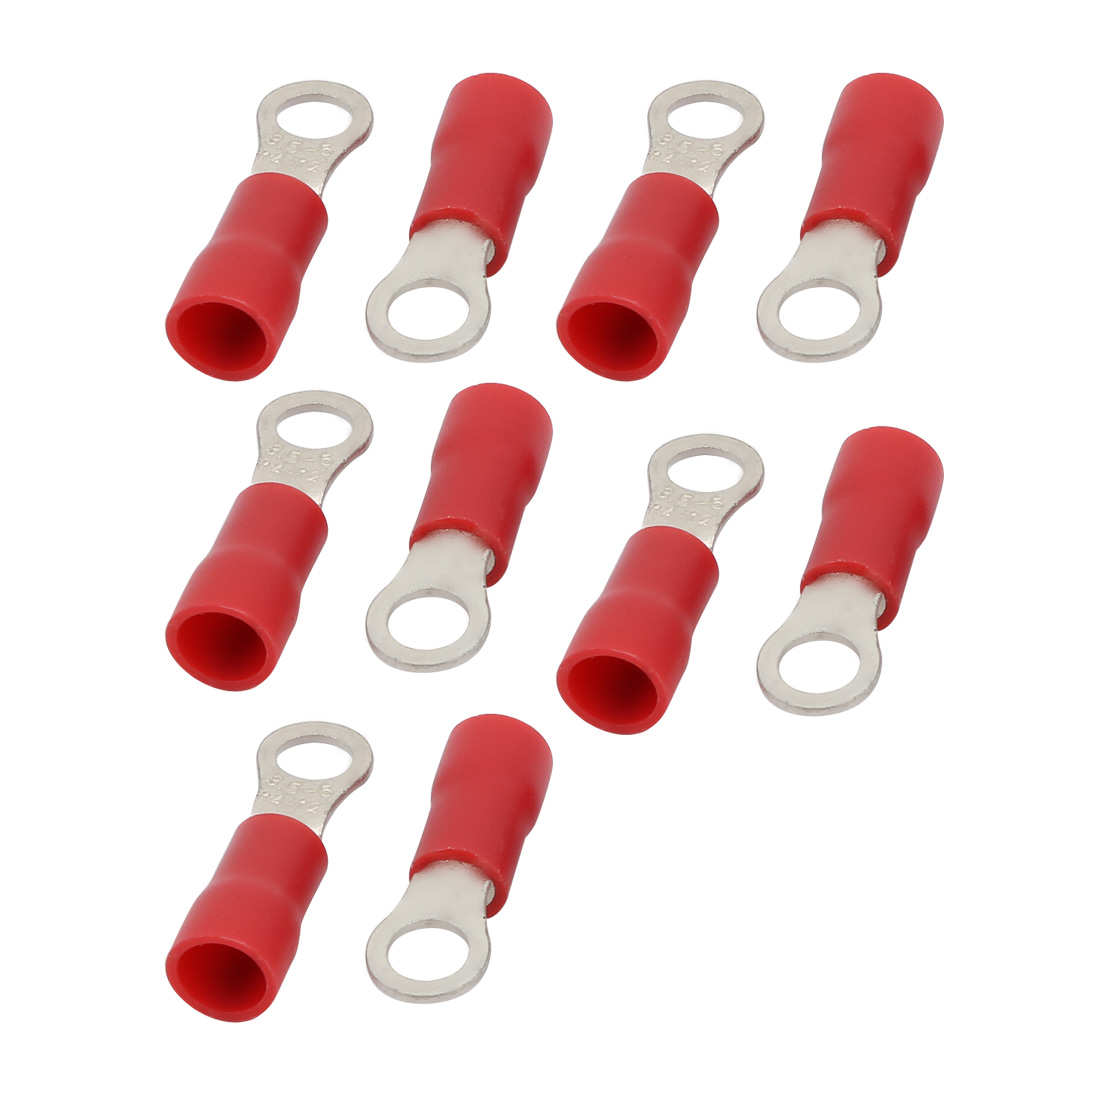 20pcs RV3.5-5 Pre Insulated Ring Crimp Terminal Connector Red for AWG 14-12 Wire